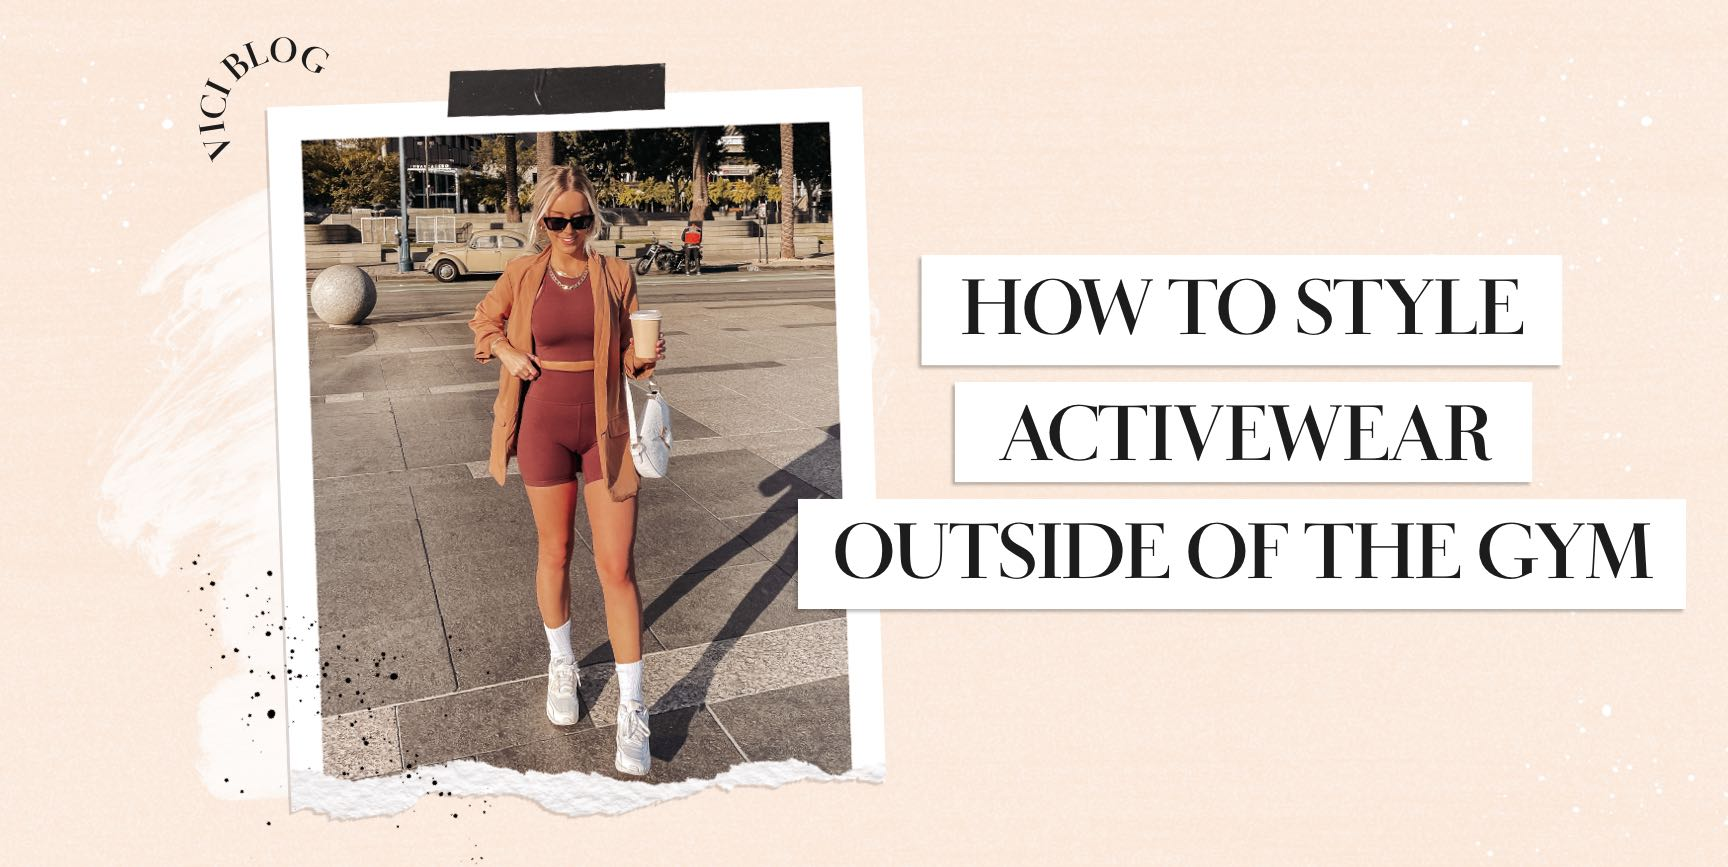 If we've learned anything from our previous year spent indoors, it's that comfort is KEY when it comes to getting dressed again. Gone are the days of spending 9-5 in stiff denim! There are so many fun ways to style your matching workout set outside of the gym. Even if you have no actual plans to break a sweat, stretchy shorts and fitted tanks are a great foundation for a trend-forward 'fit.   In efforts to achieve that Hailey Beiber cool girl style, we're sharing our top three favorite ways to style activewear in everyday life. Whether you're slowly strolling a farmer's market on a sunday, going for that business-meets-casual look, or meeting up with friends for a night out in the city, we're here to inspire you with sporty chic vibes! Shop VICI Activewear